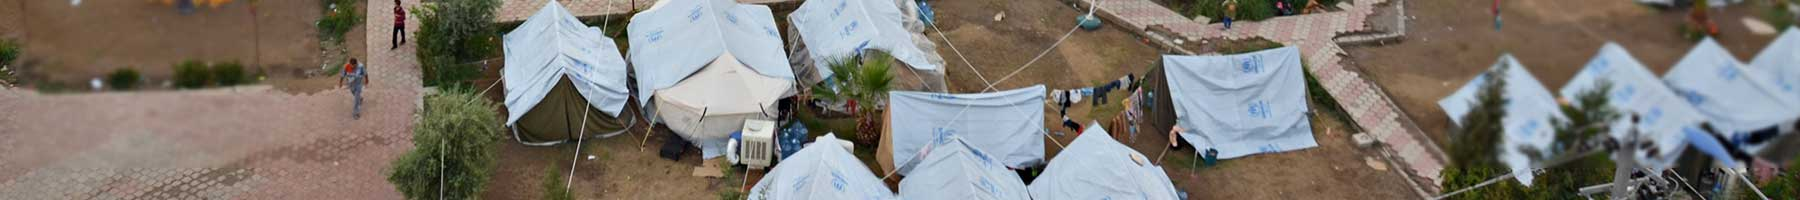 white tents in a refugee camp